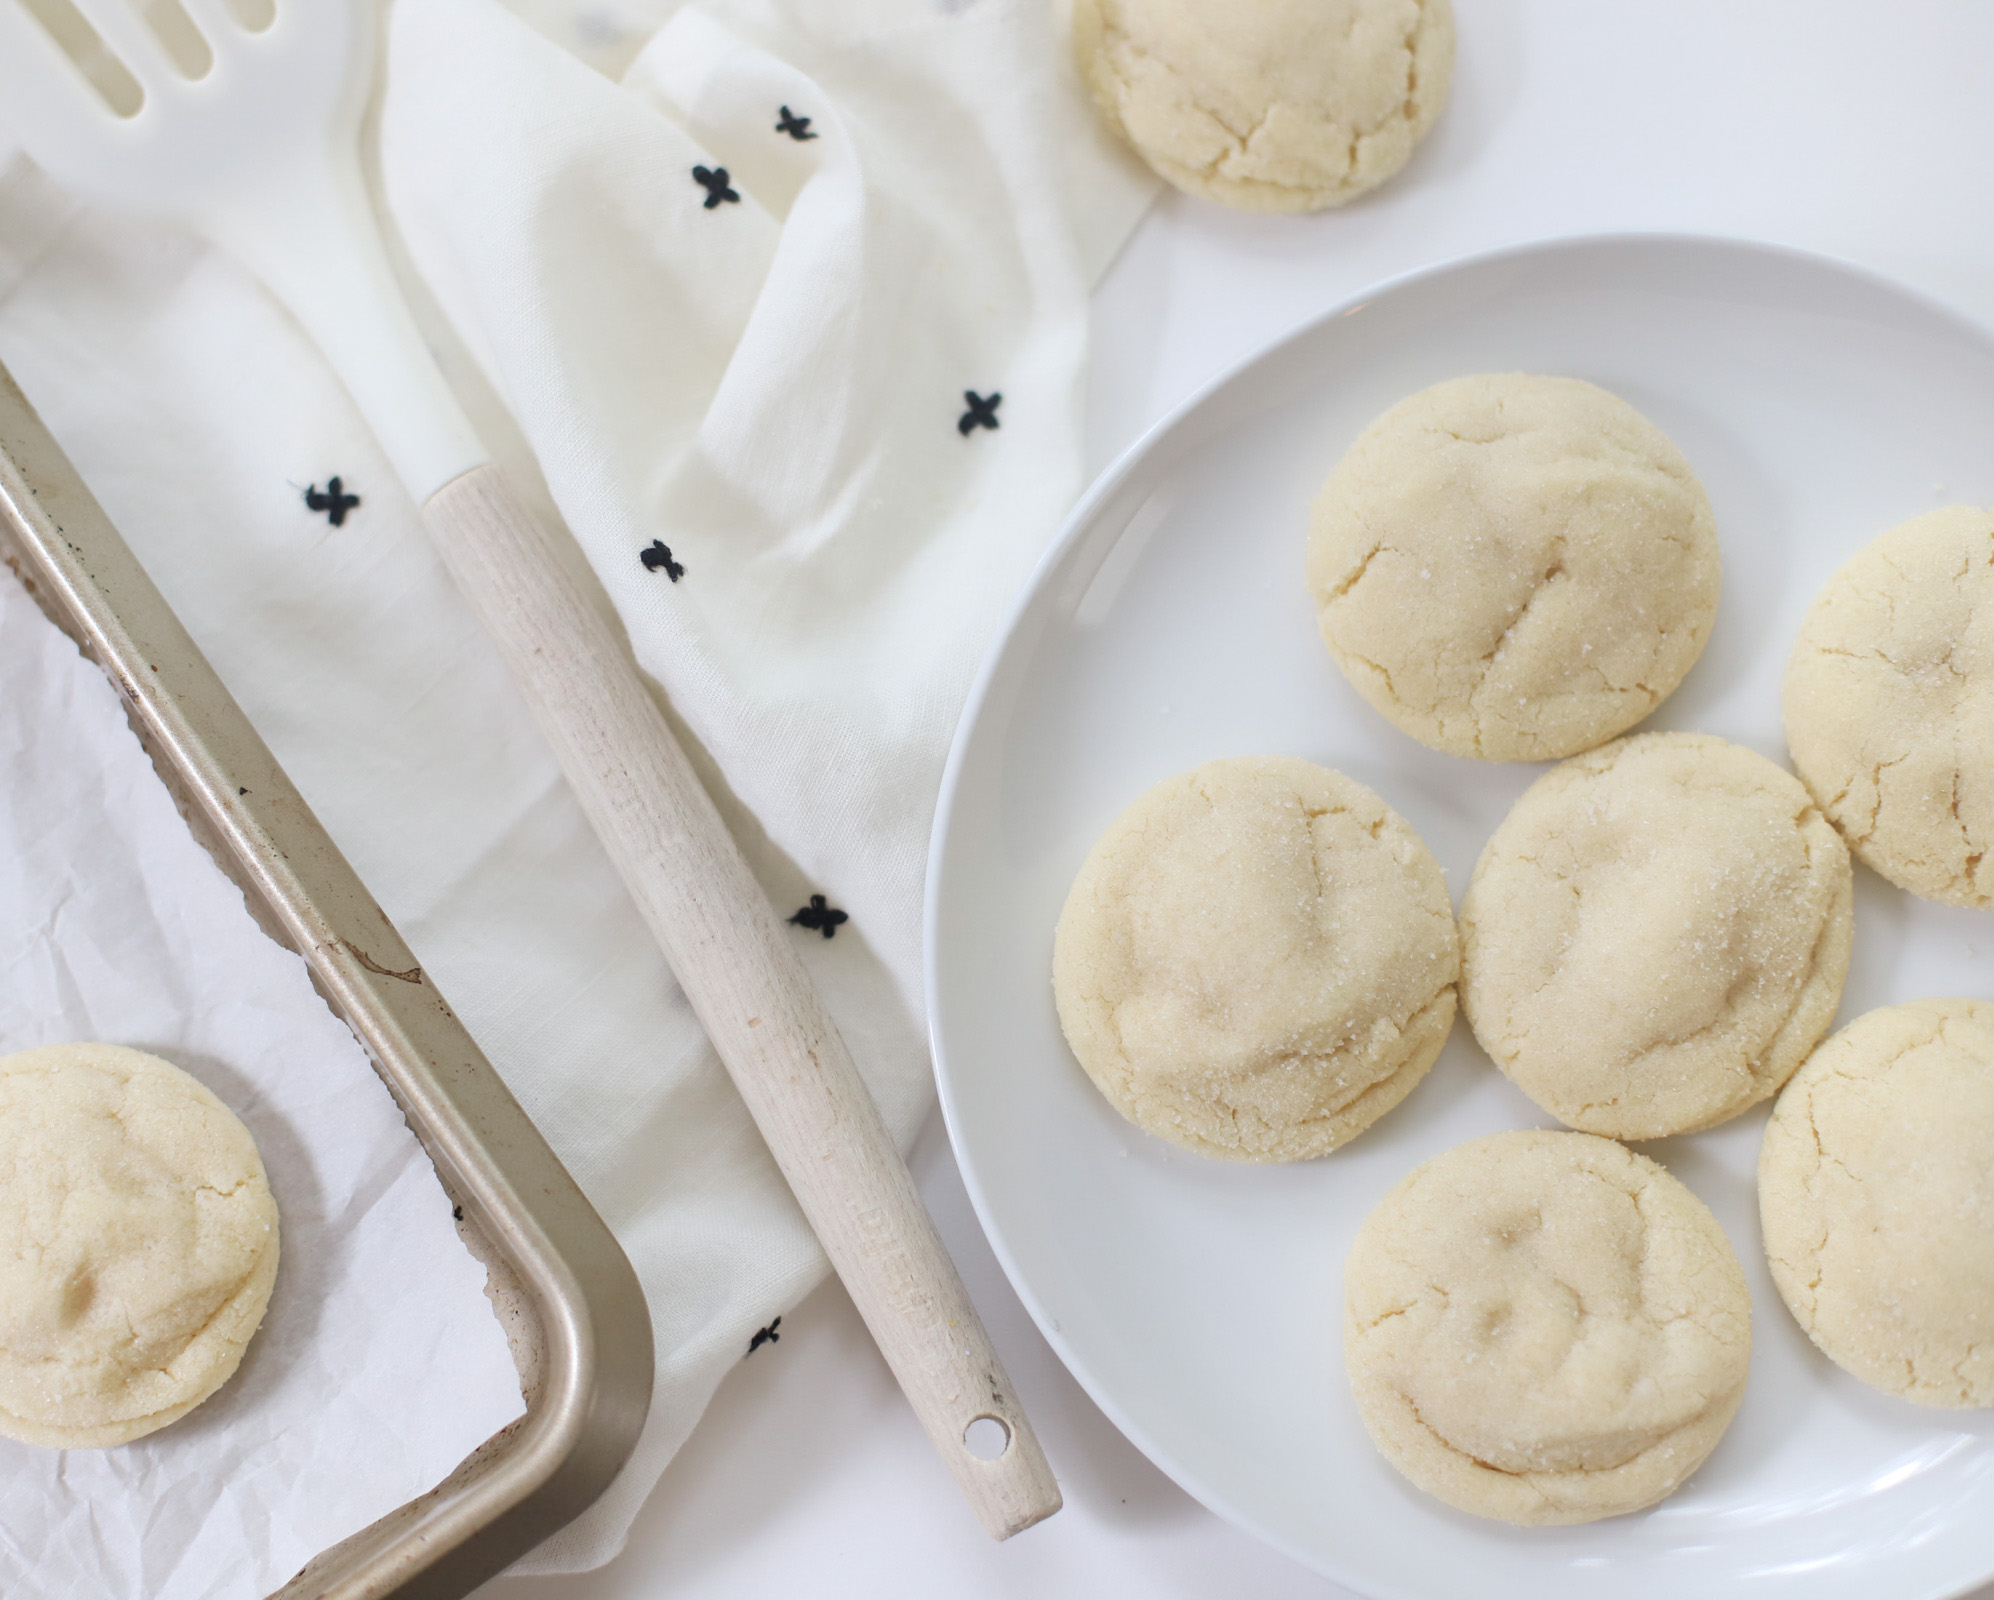 soft Dairy Free Sprinkle Sugar Cookies without sprinkles  on a white plate